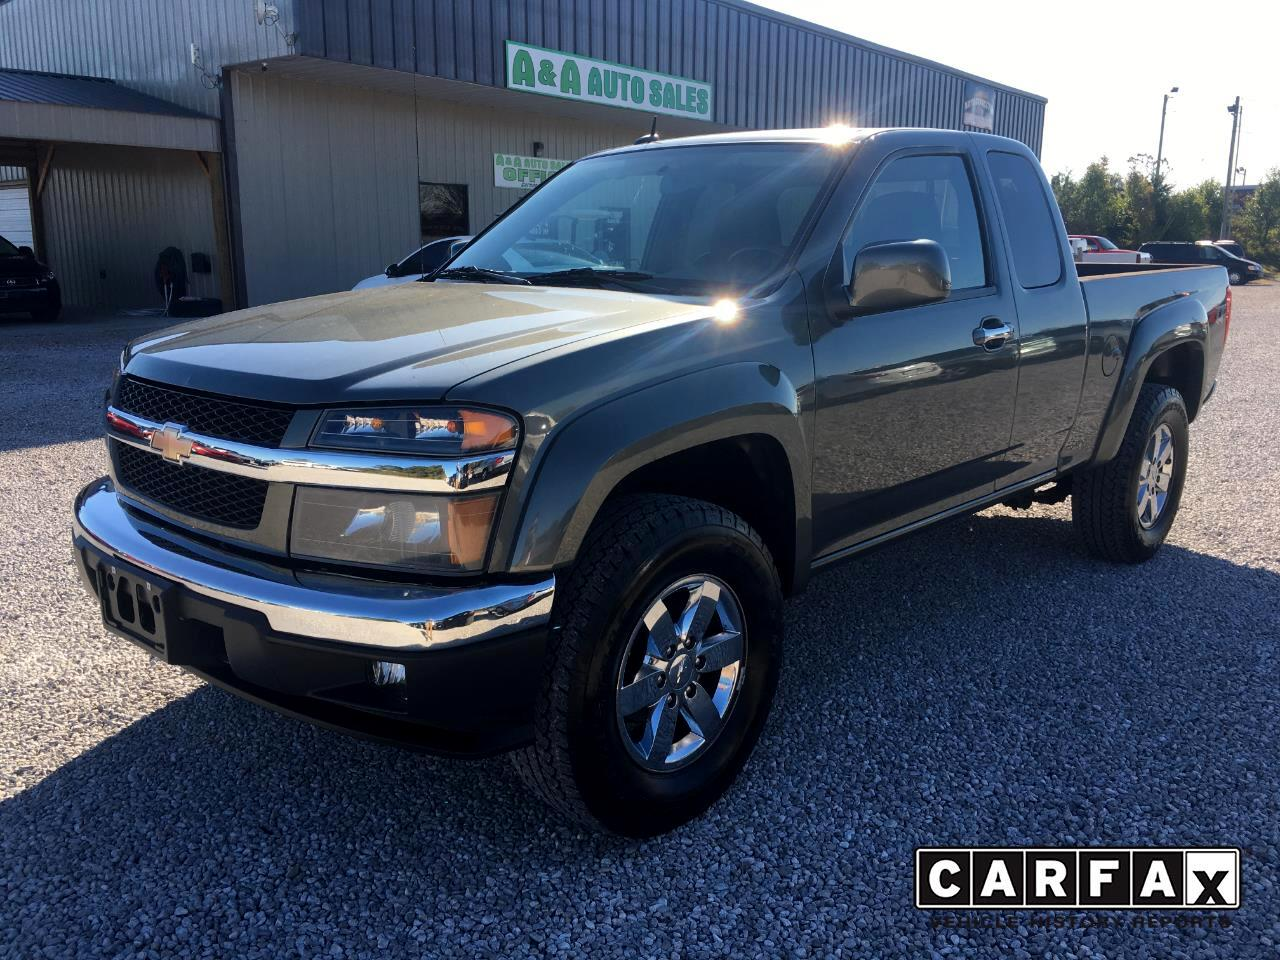 2010 Chevrolet Colorado LT1 Ext. Cab 4WD